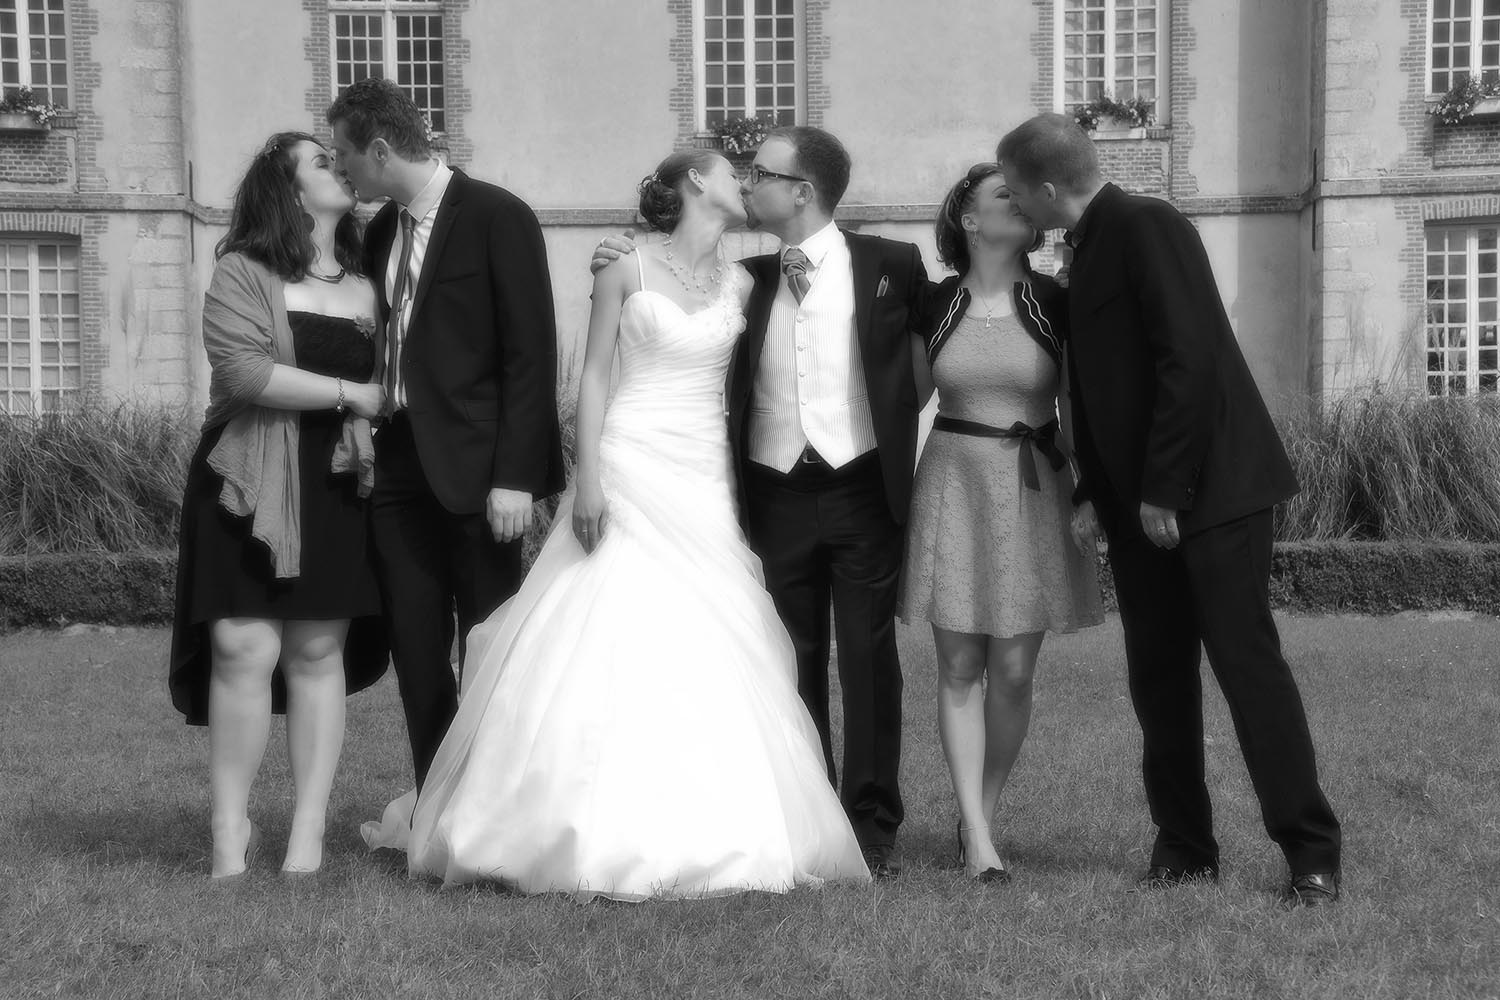 Three couples kissing each other at wedding